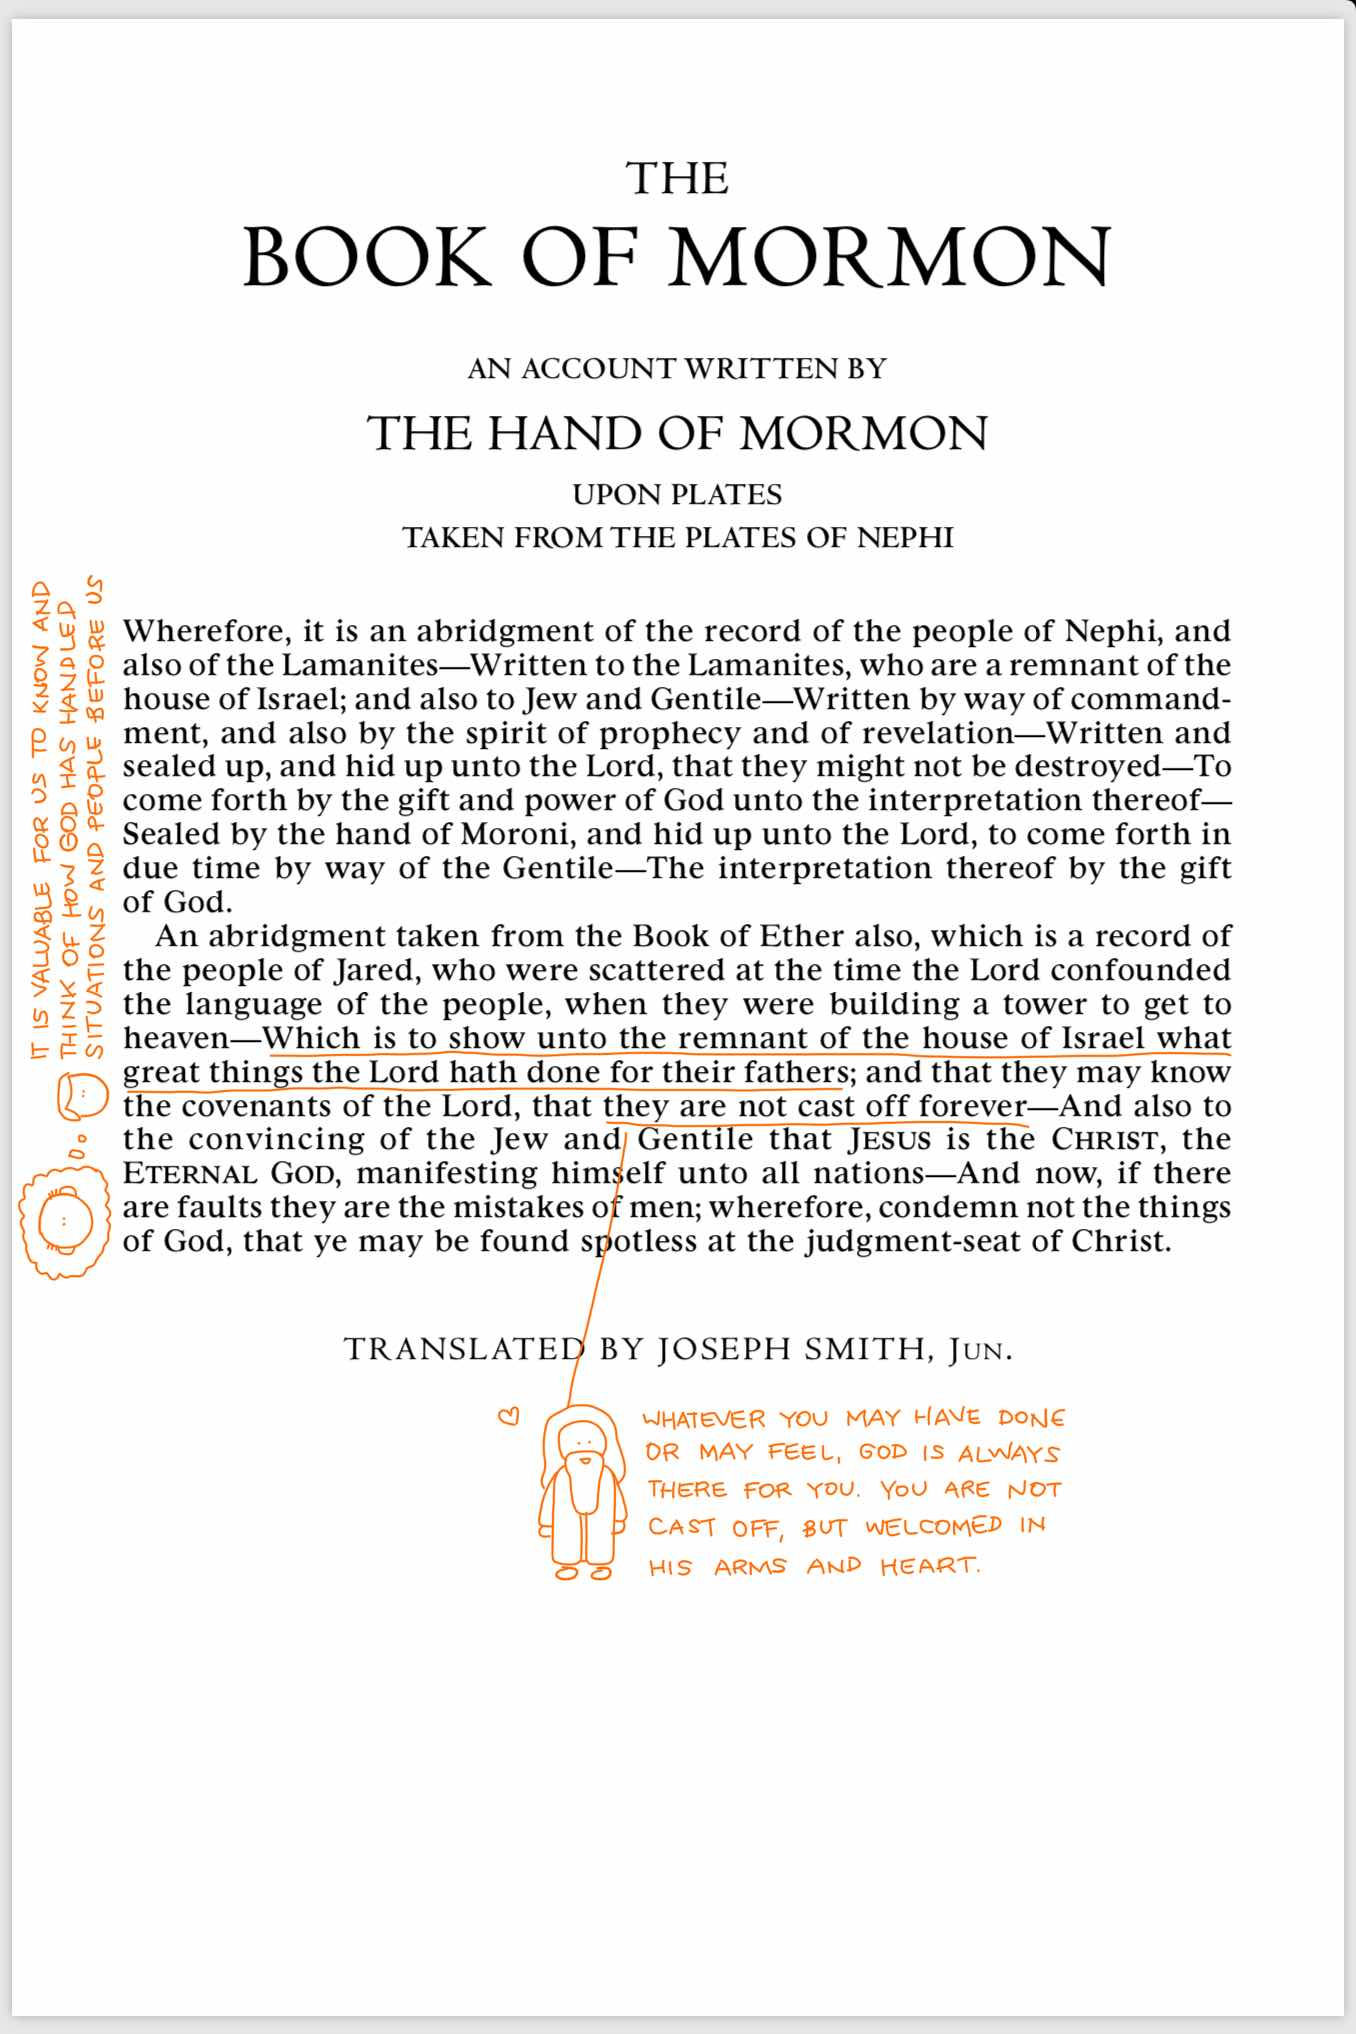 Book of Mormon Title Page